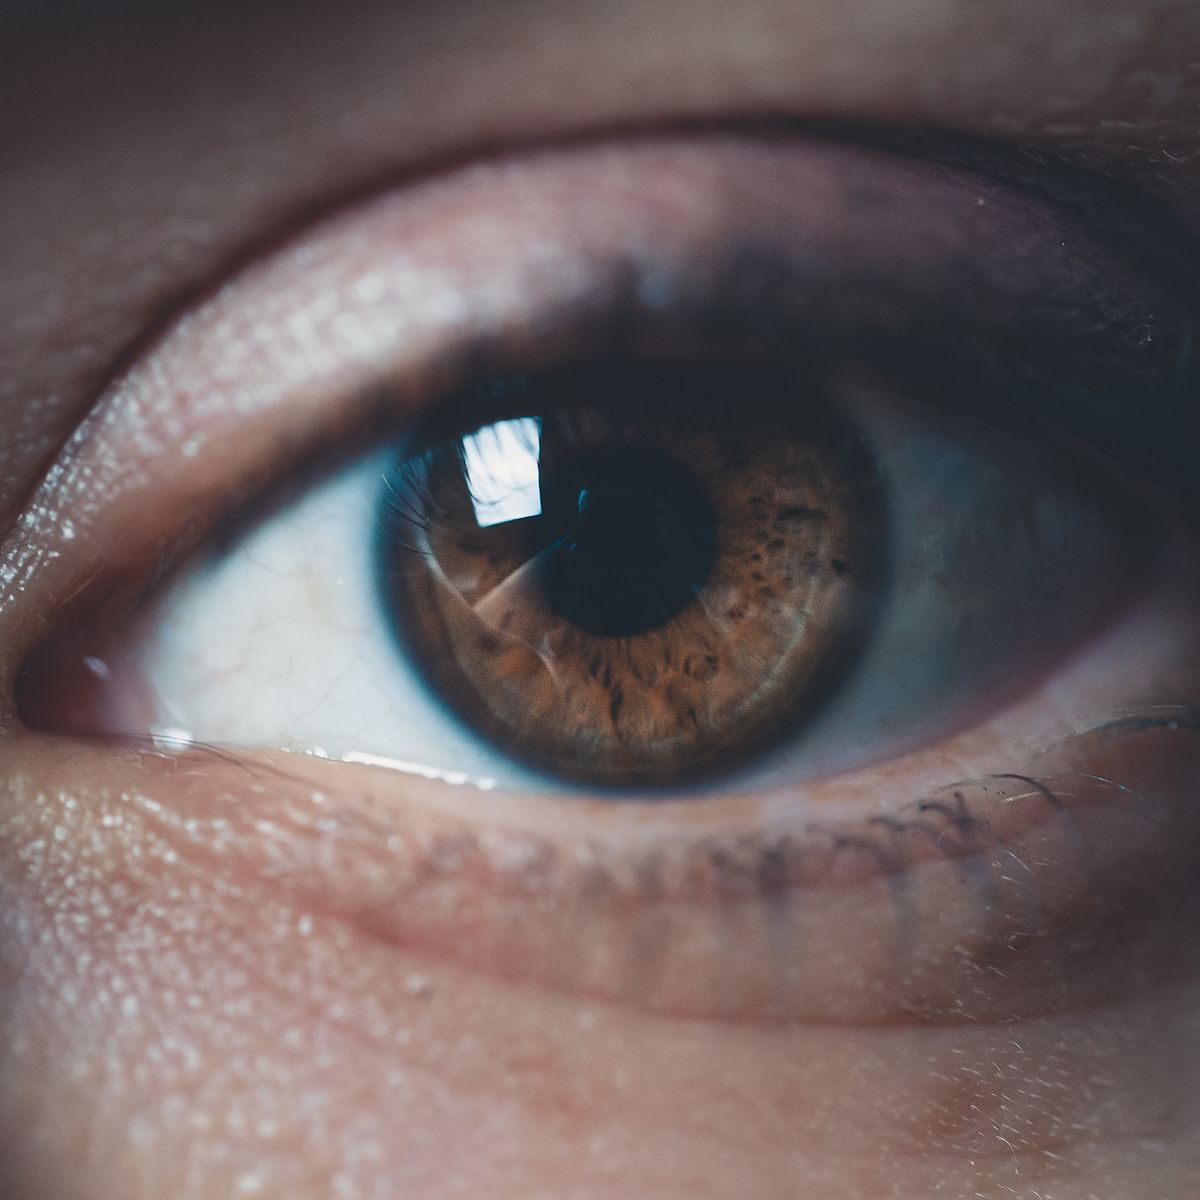 Optic nerve stimulation offers hope for visually impaired